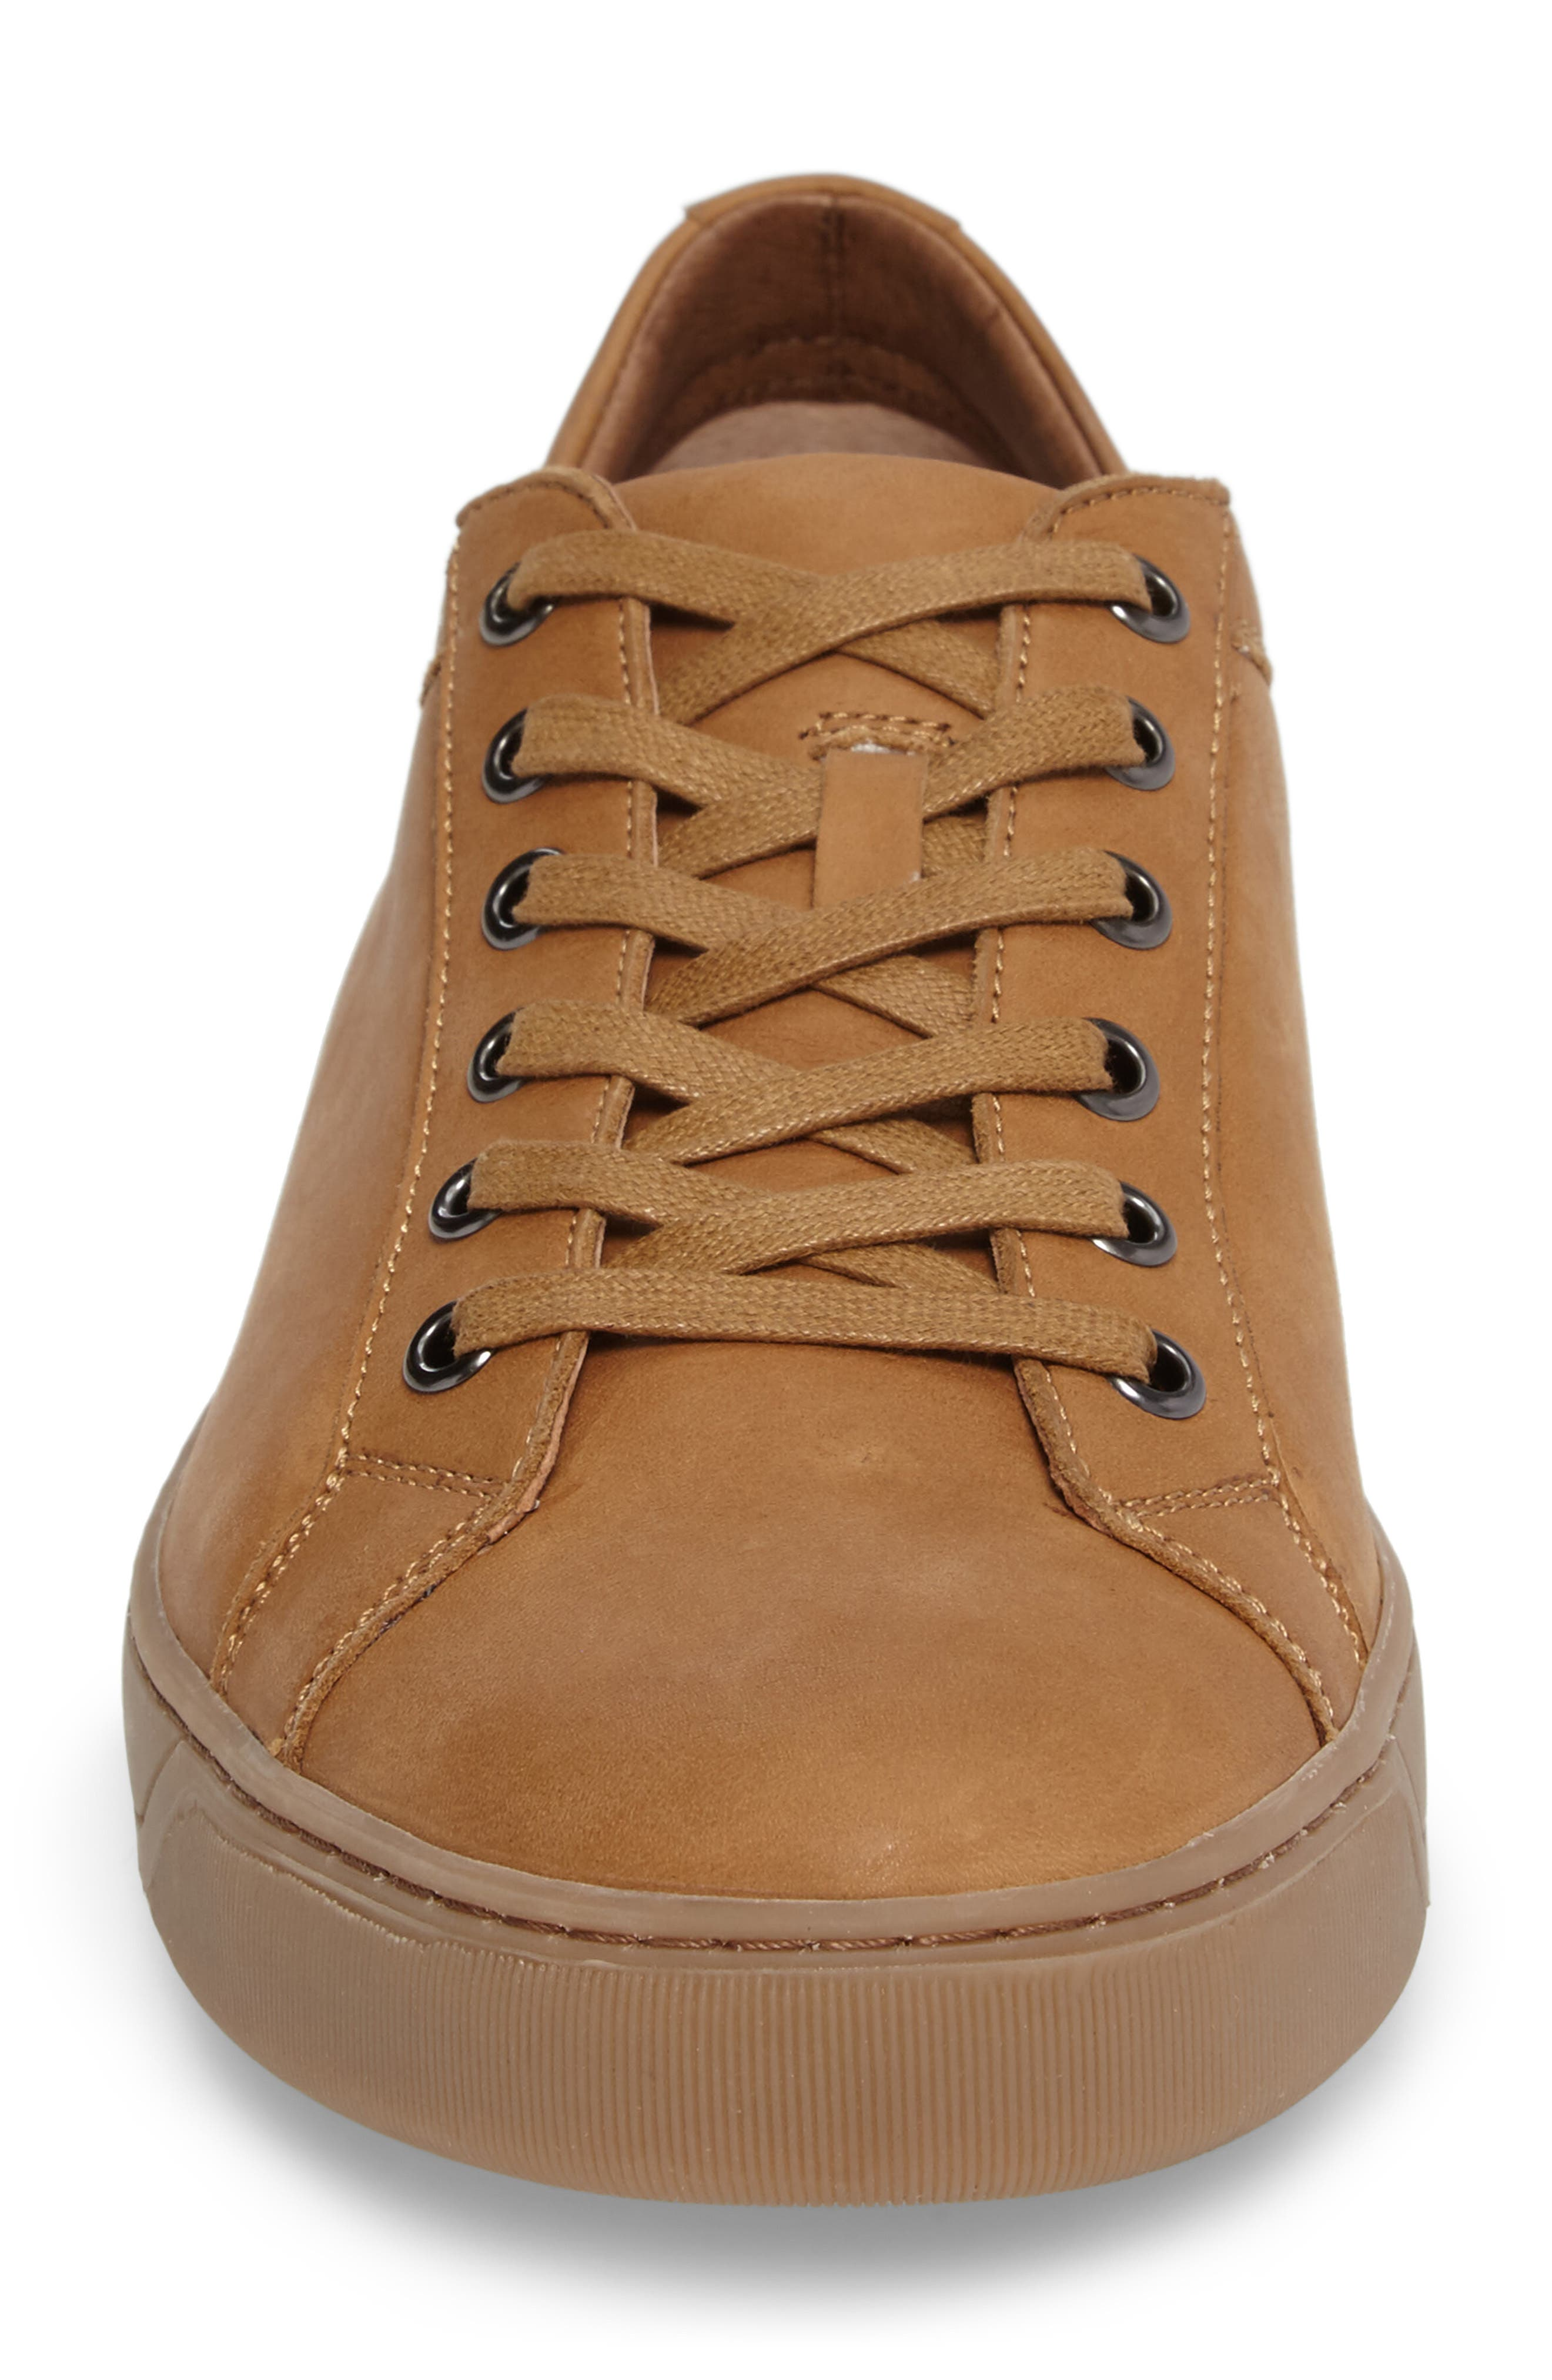 Allister Sneaker,                             Alternate thumbnail 5, color,                             Natural Leather